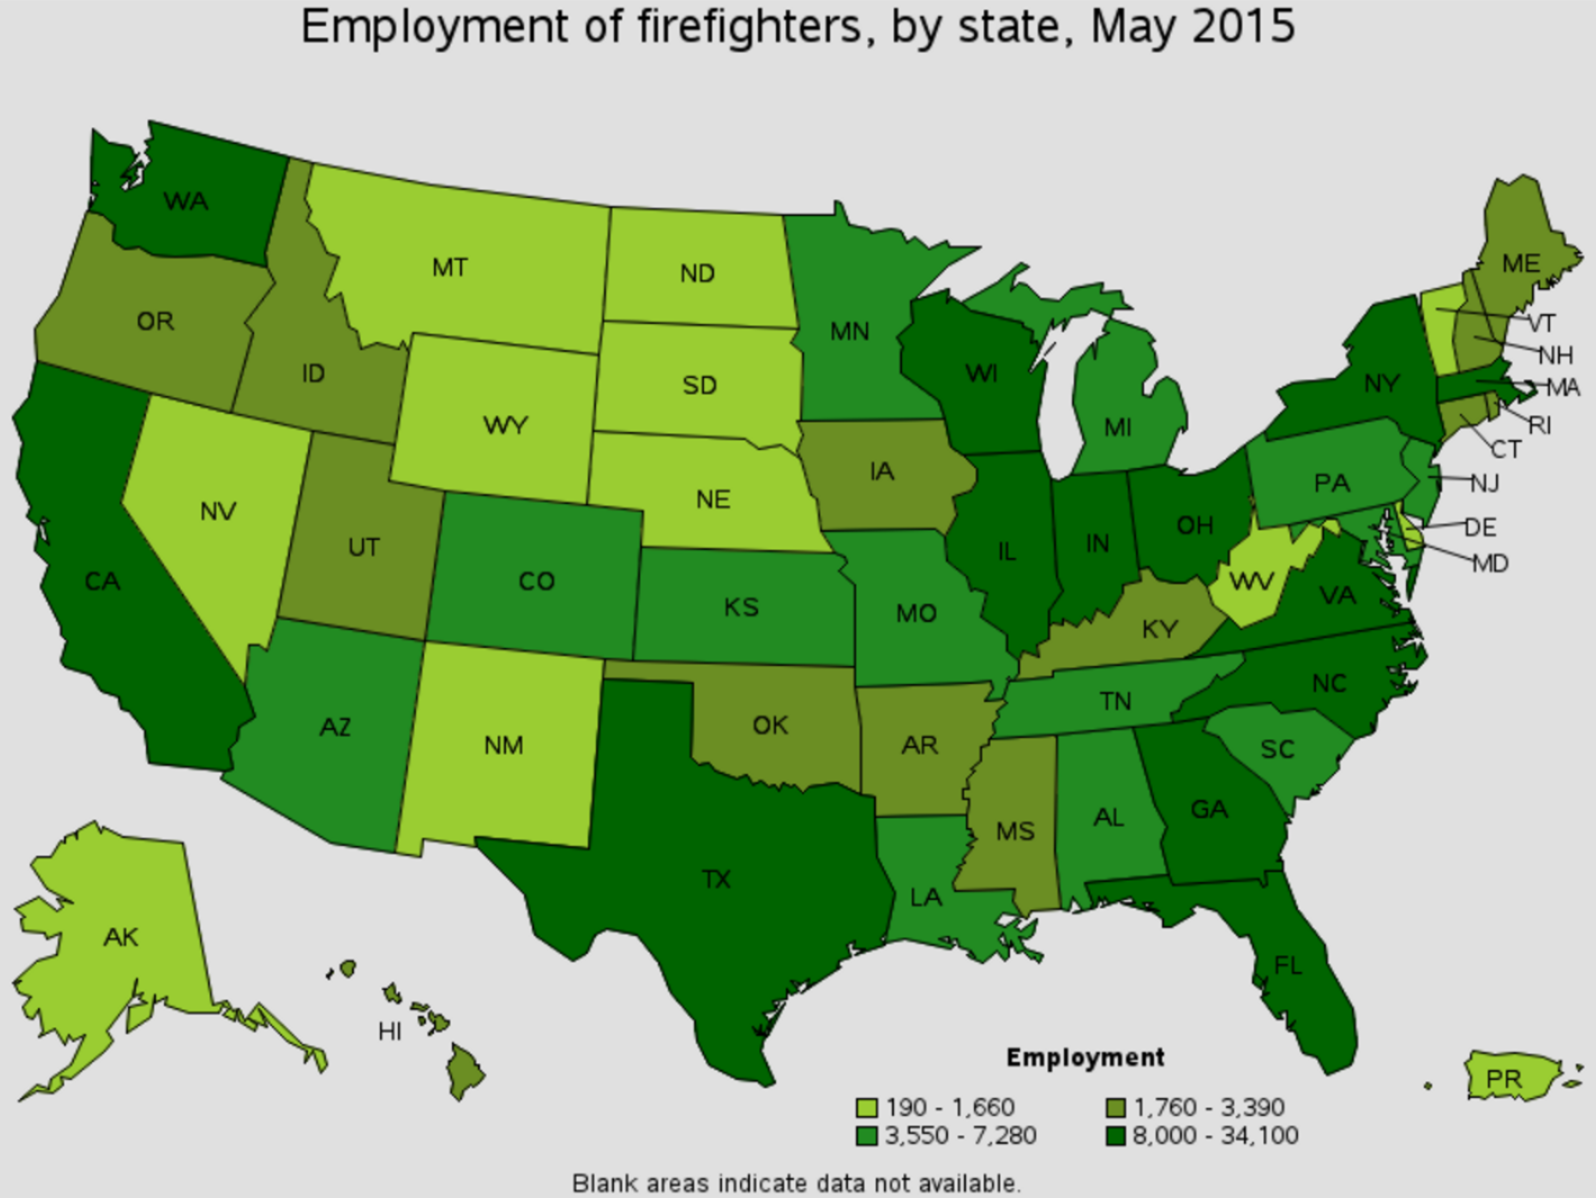 firefighter job outlook by state Greensboro North Carolina